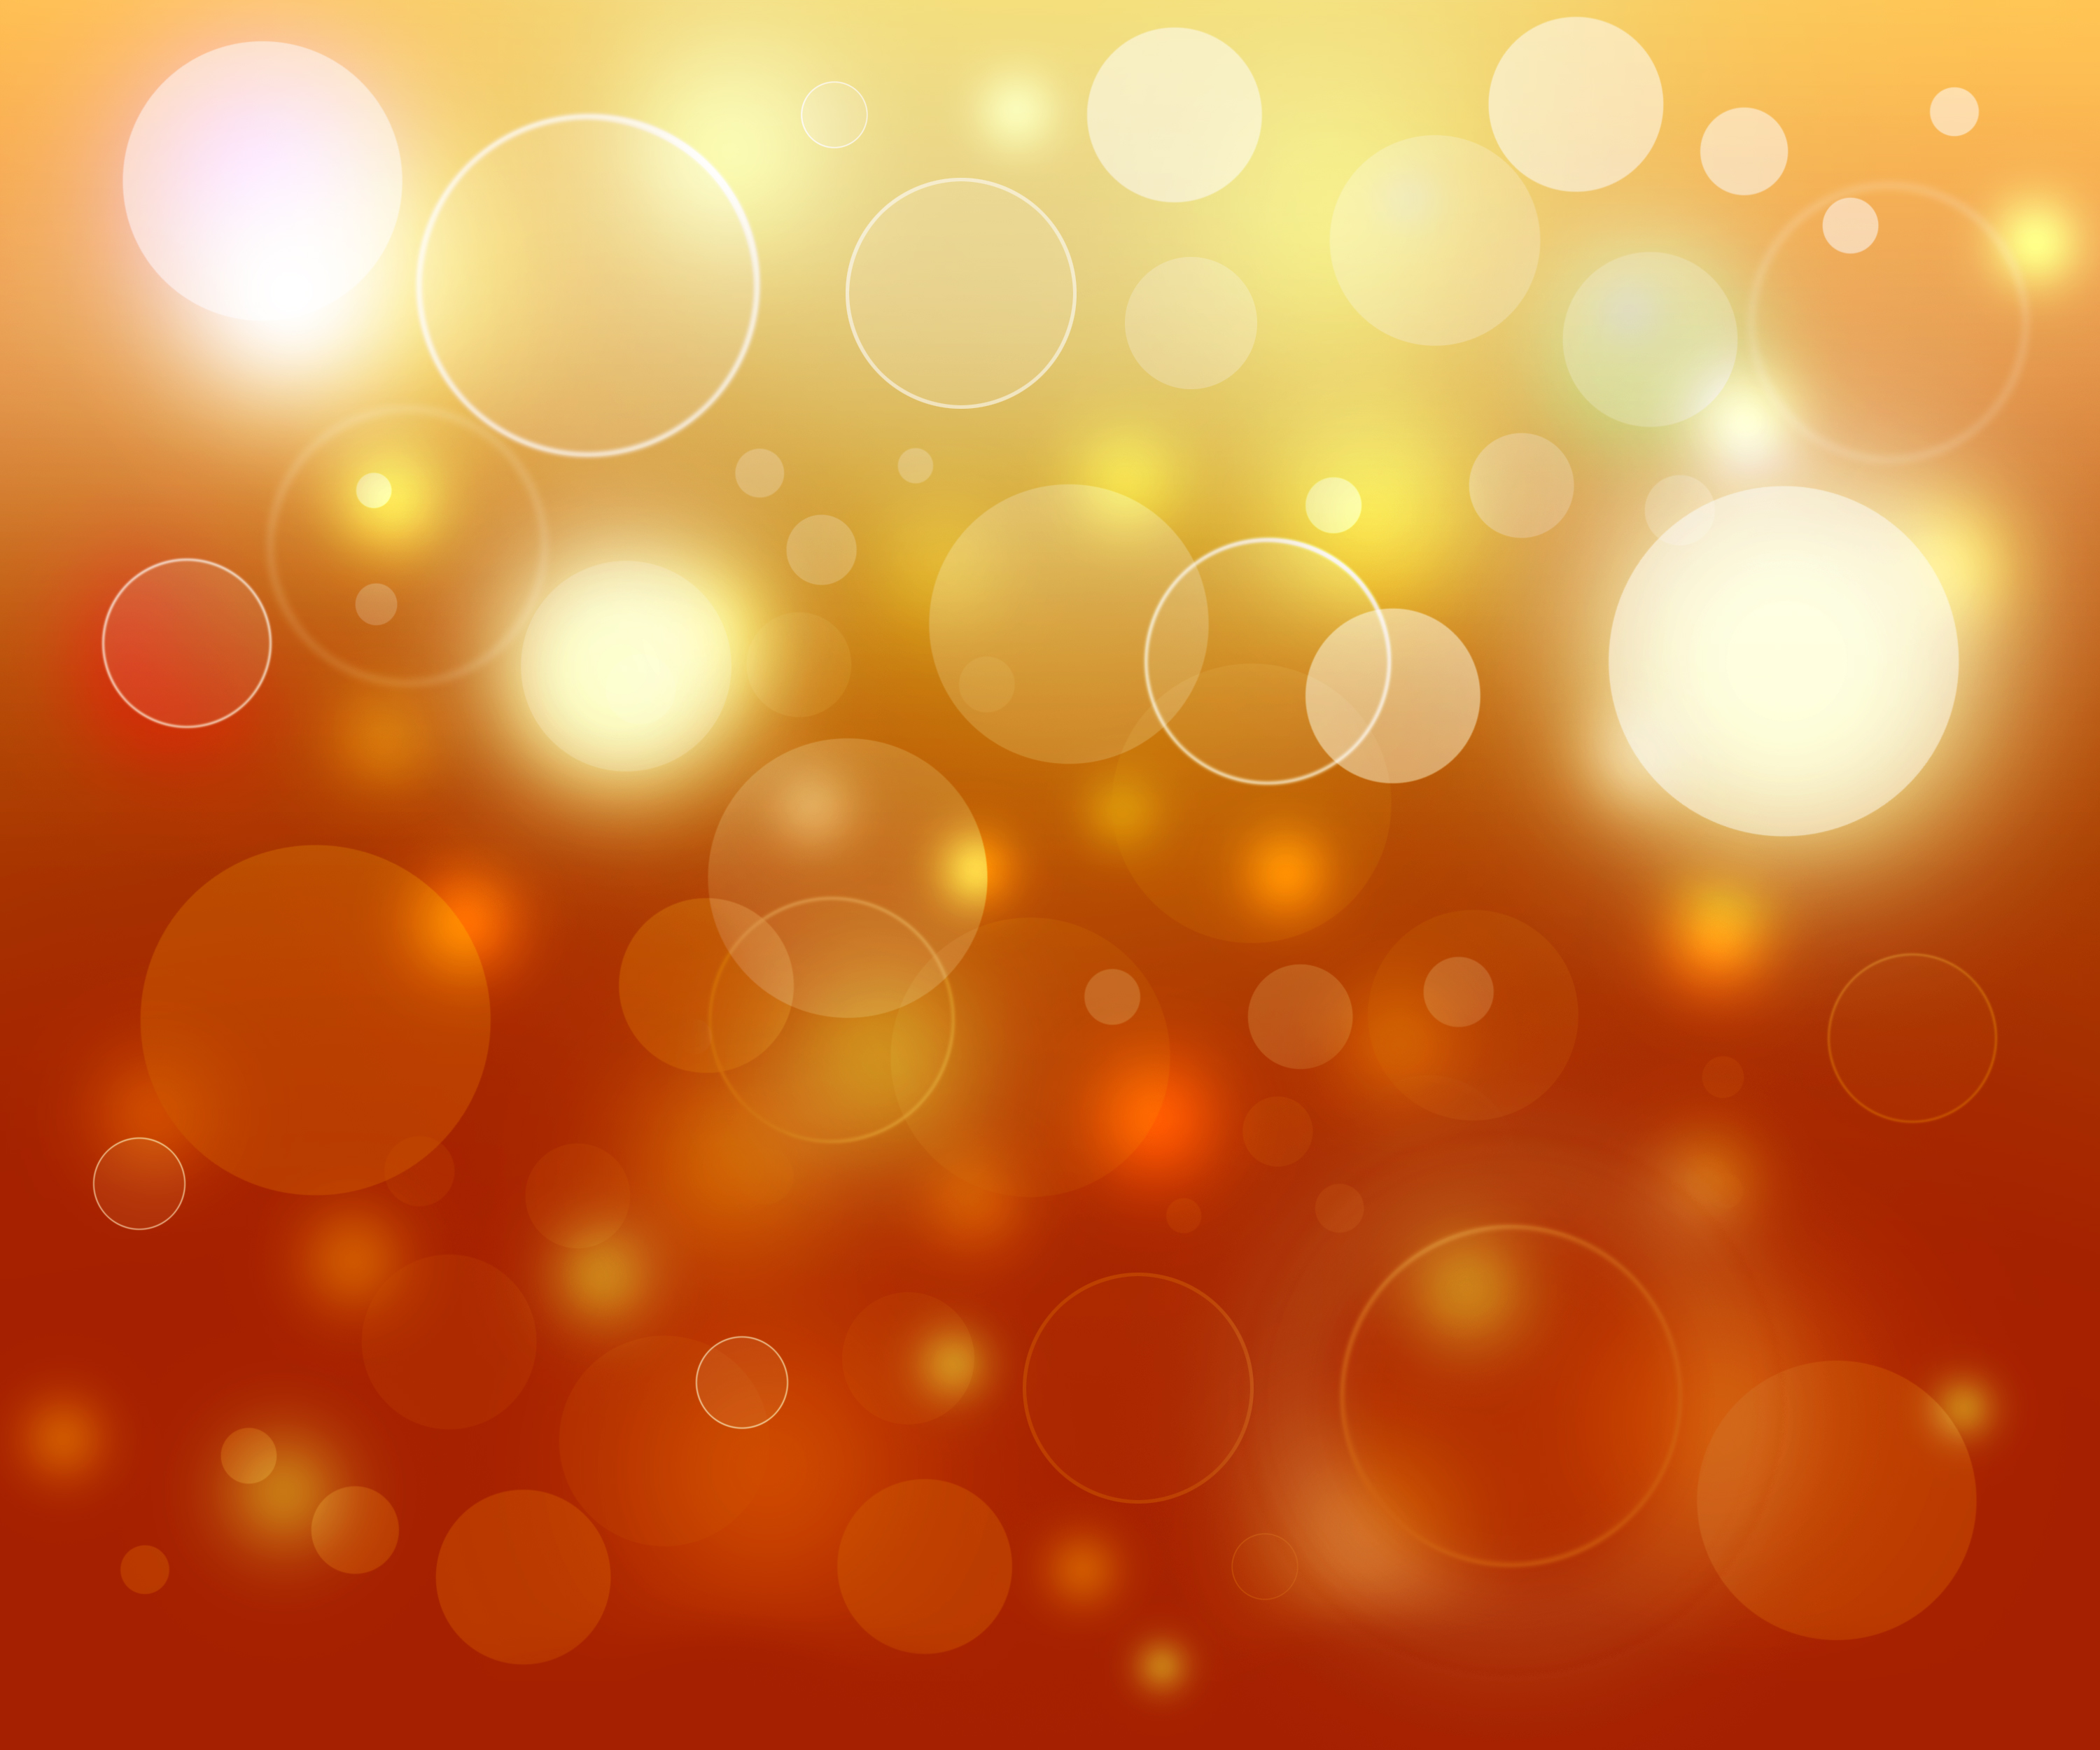 high resolution abstract bokeh background in 3 colors